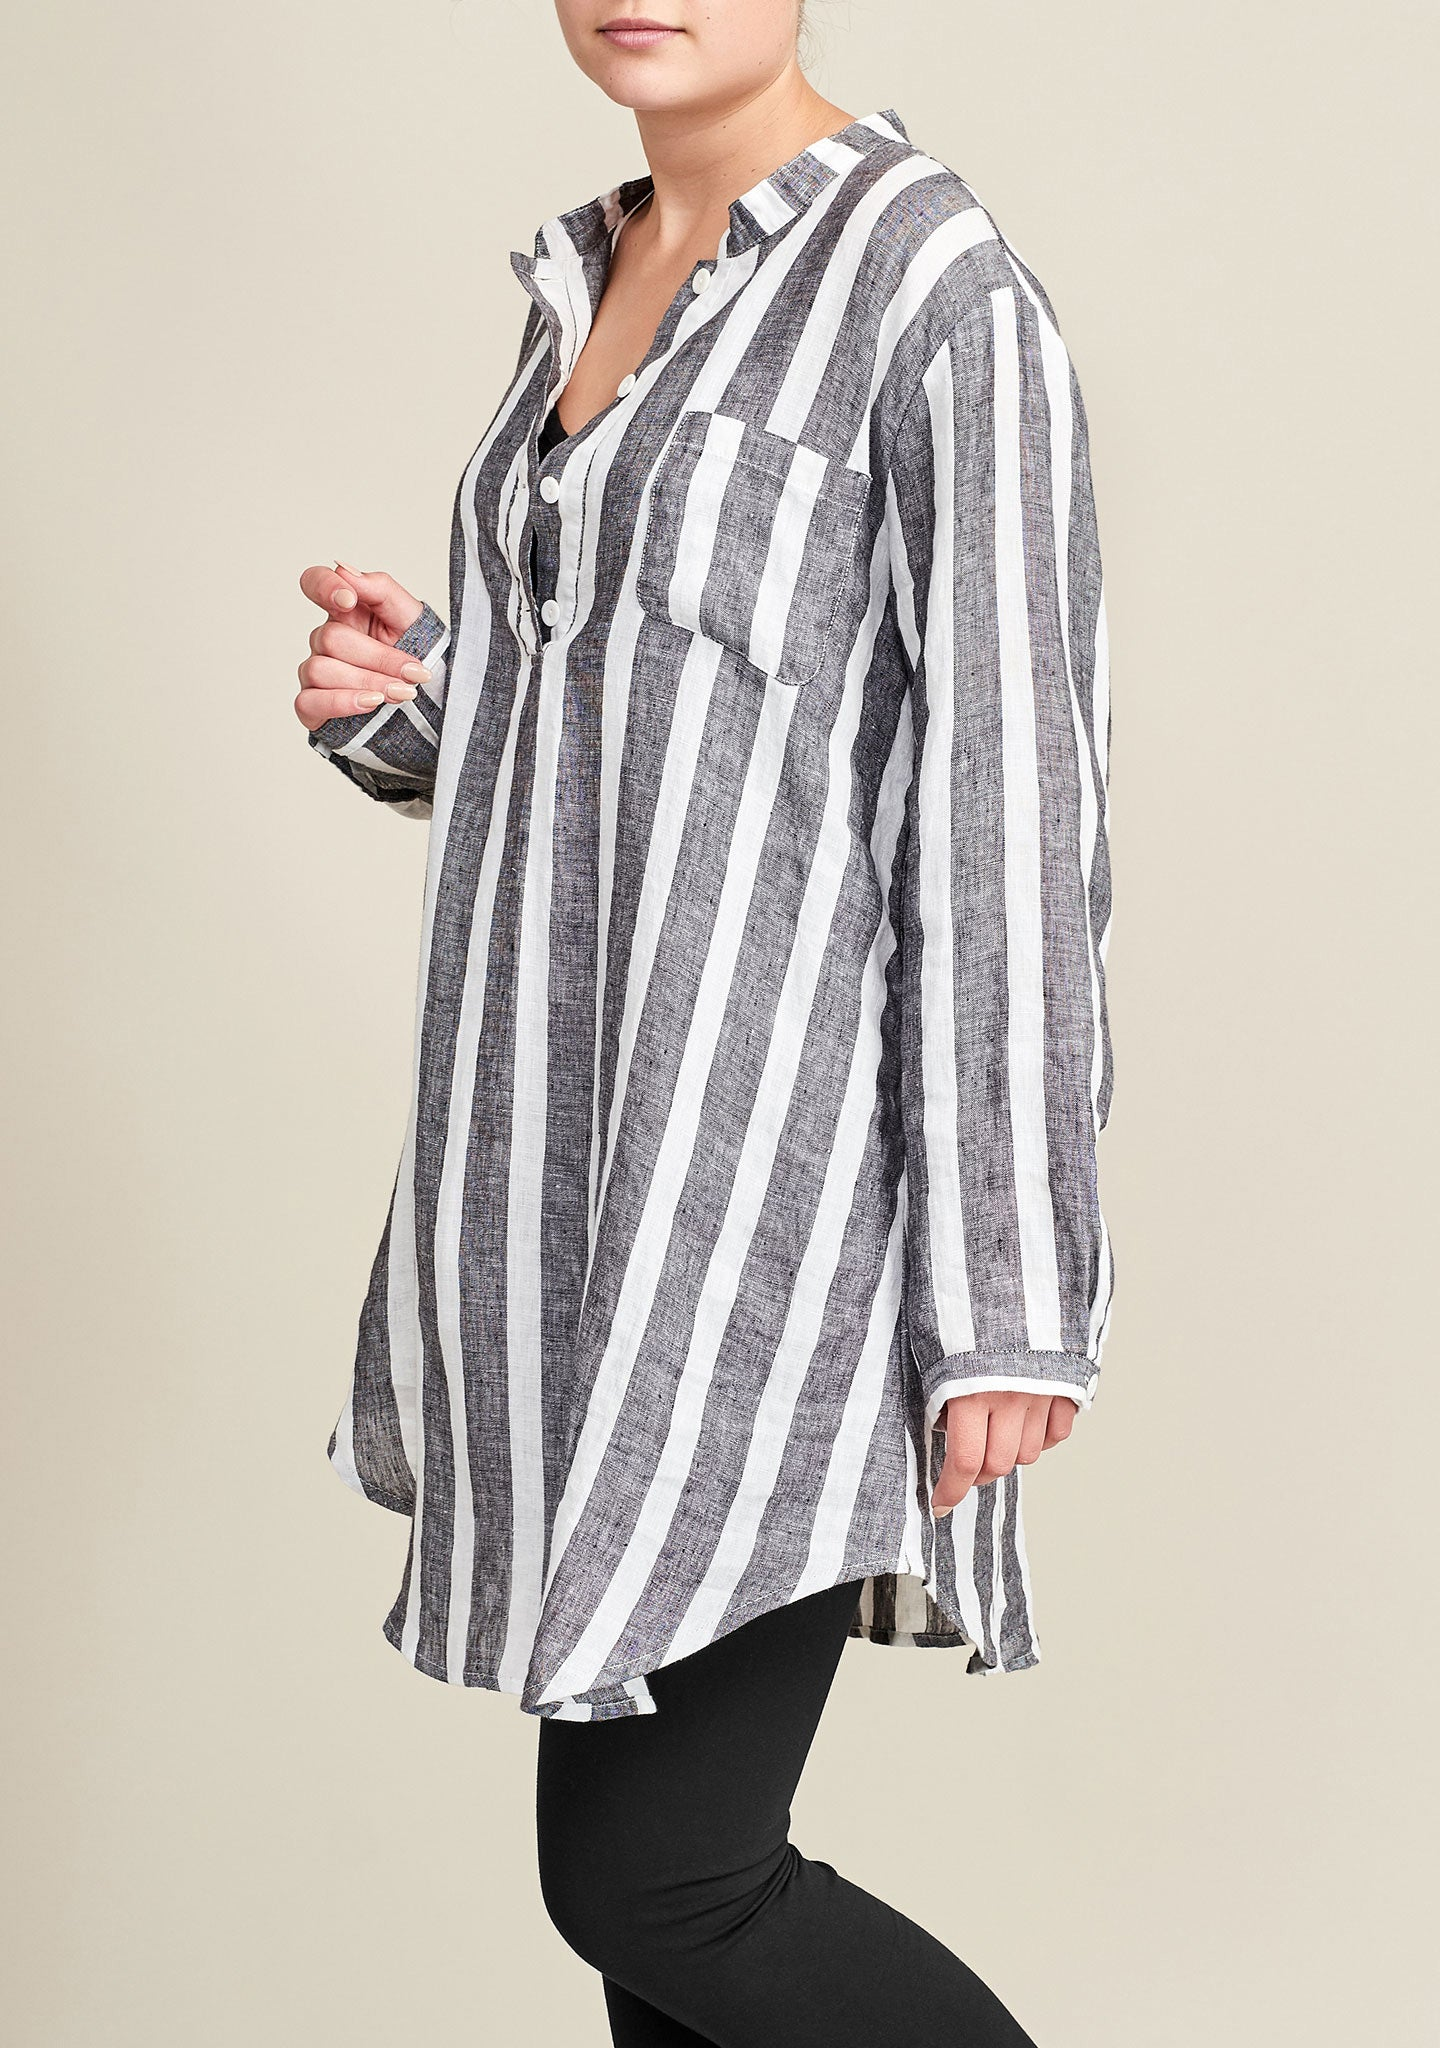 nightshirt black